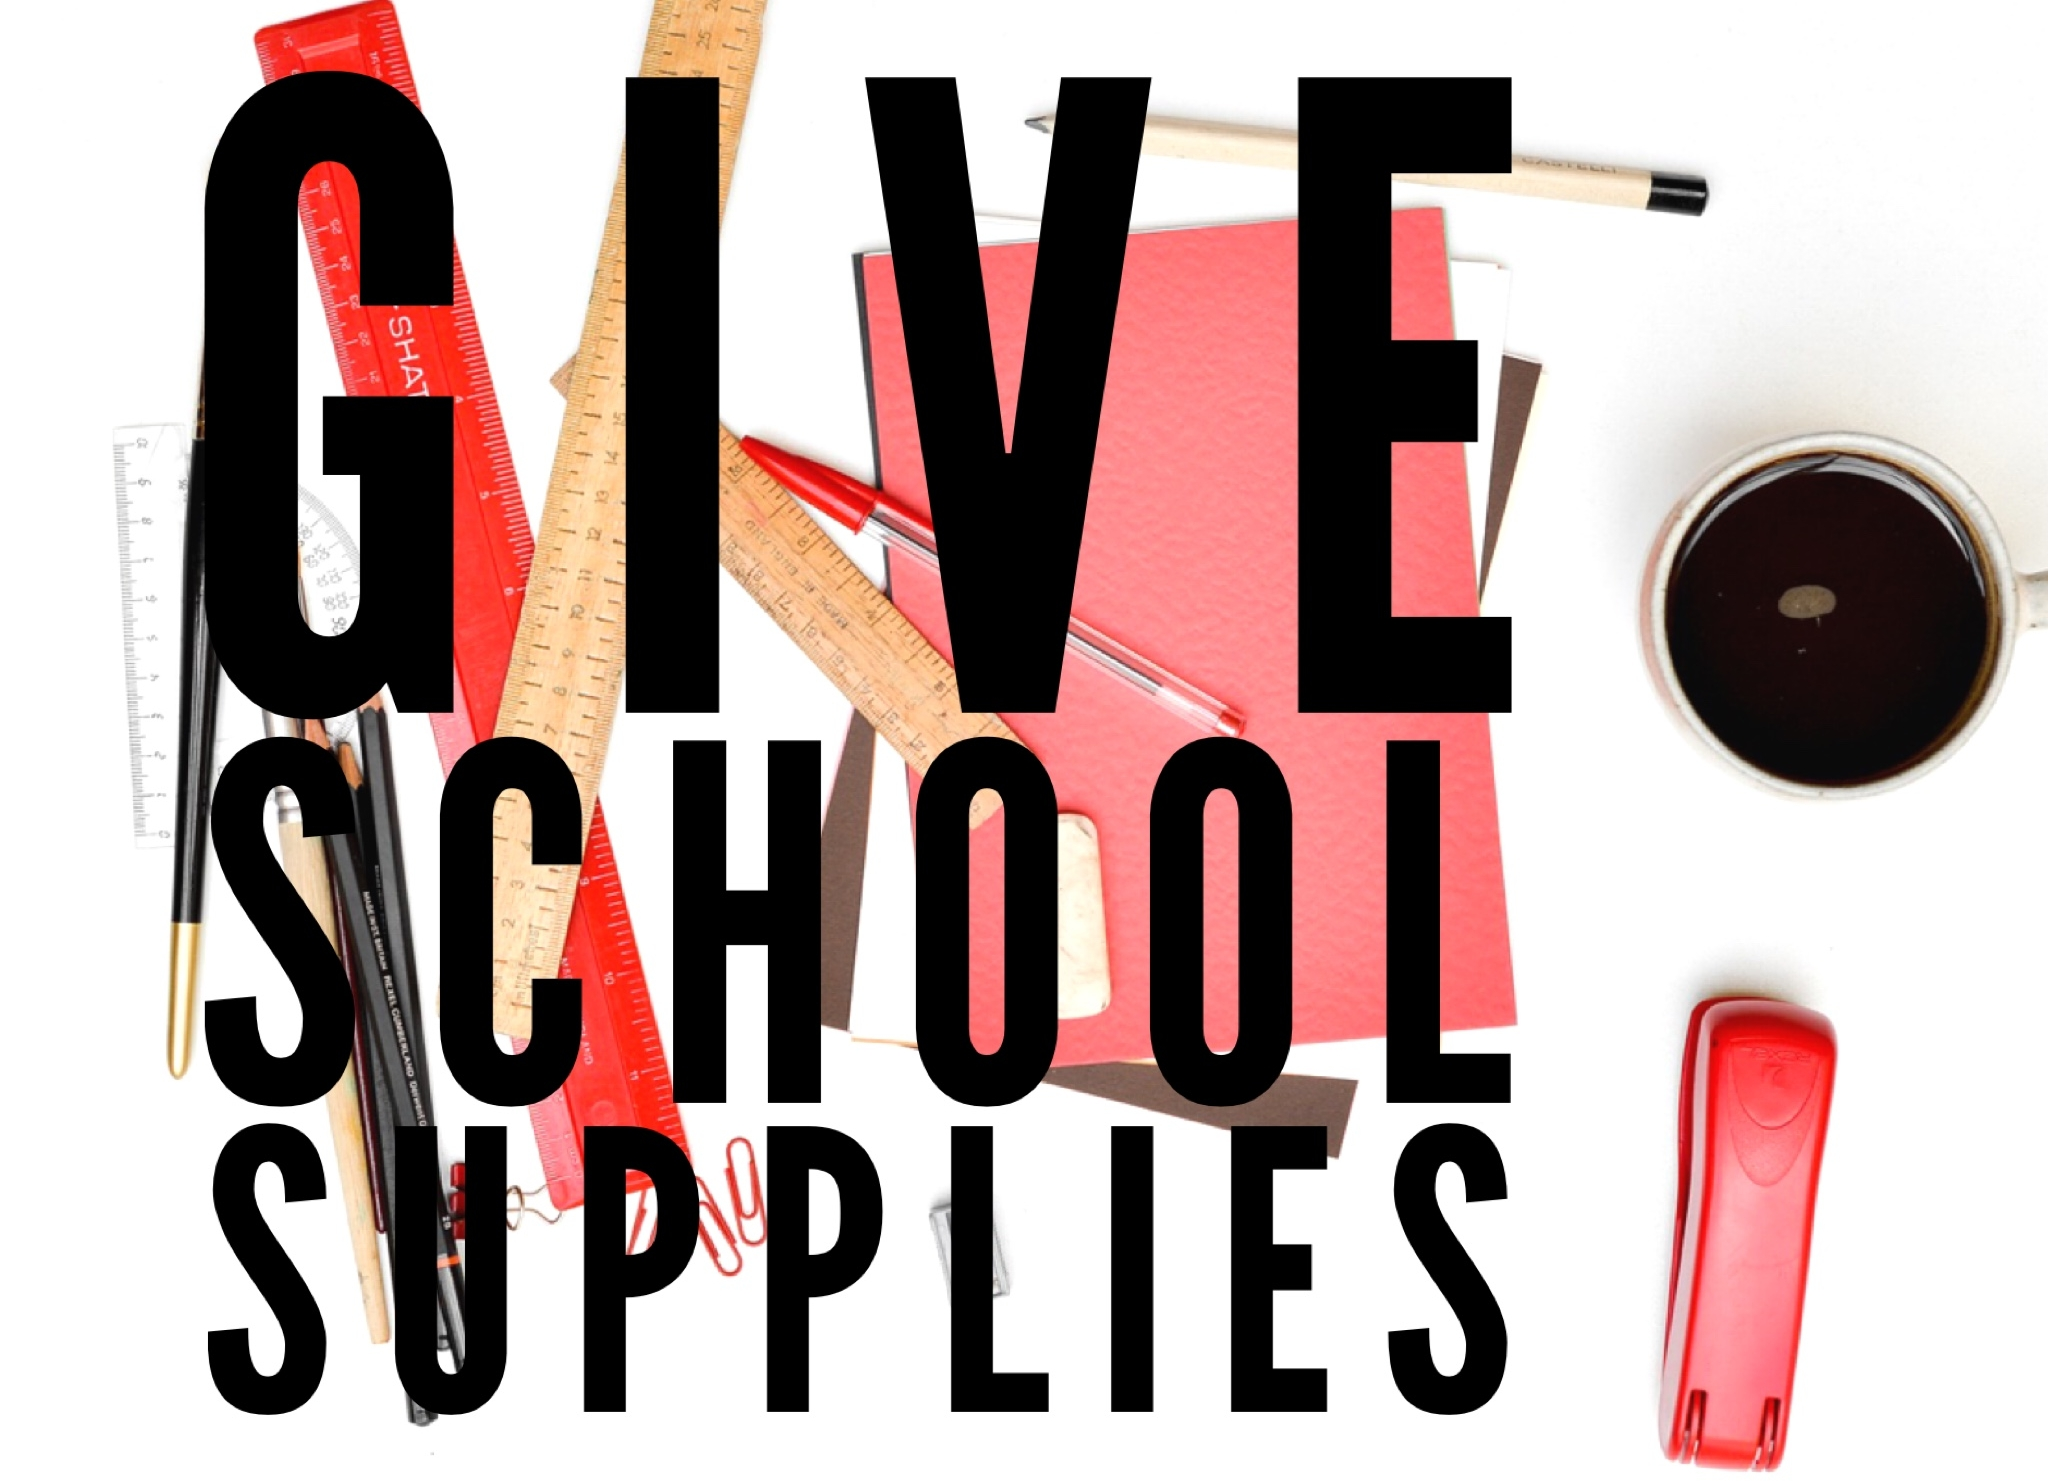 Downtown Academy is always in need of school supplies, books, and other school materials! Come by for a visit and drop donations off at the school any day of the week. Or, if you would rather purchase school supplies online, please visit the  Downtown Academy Amazon Wish List .